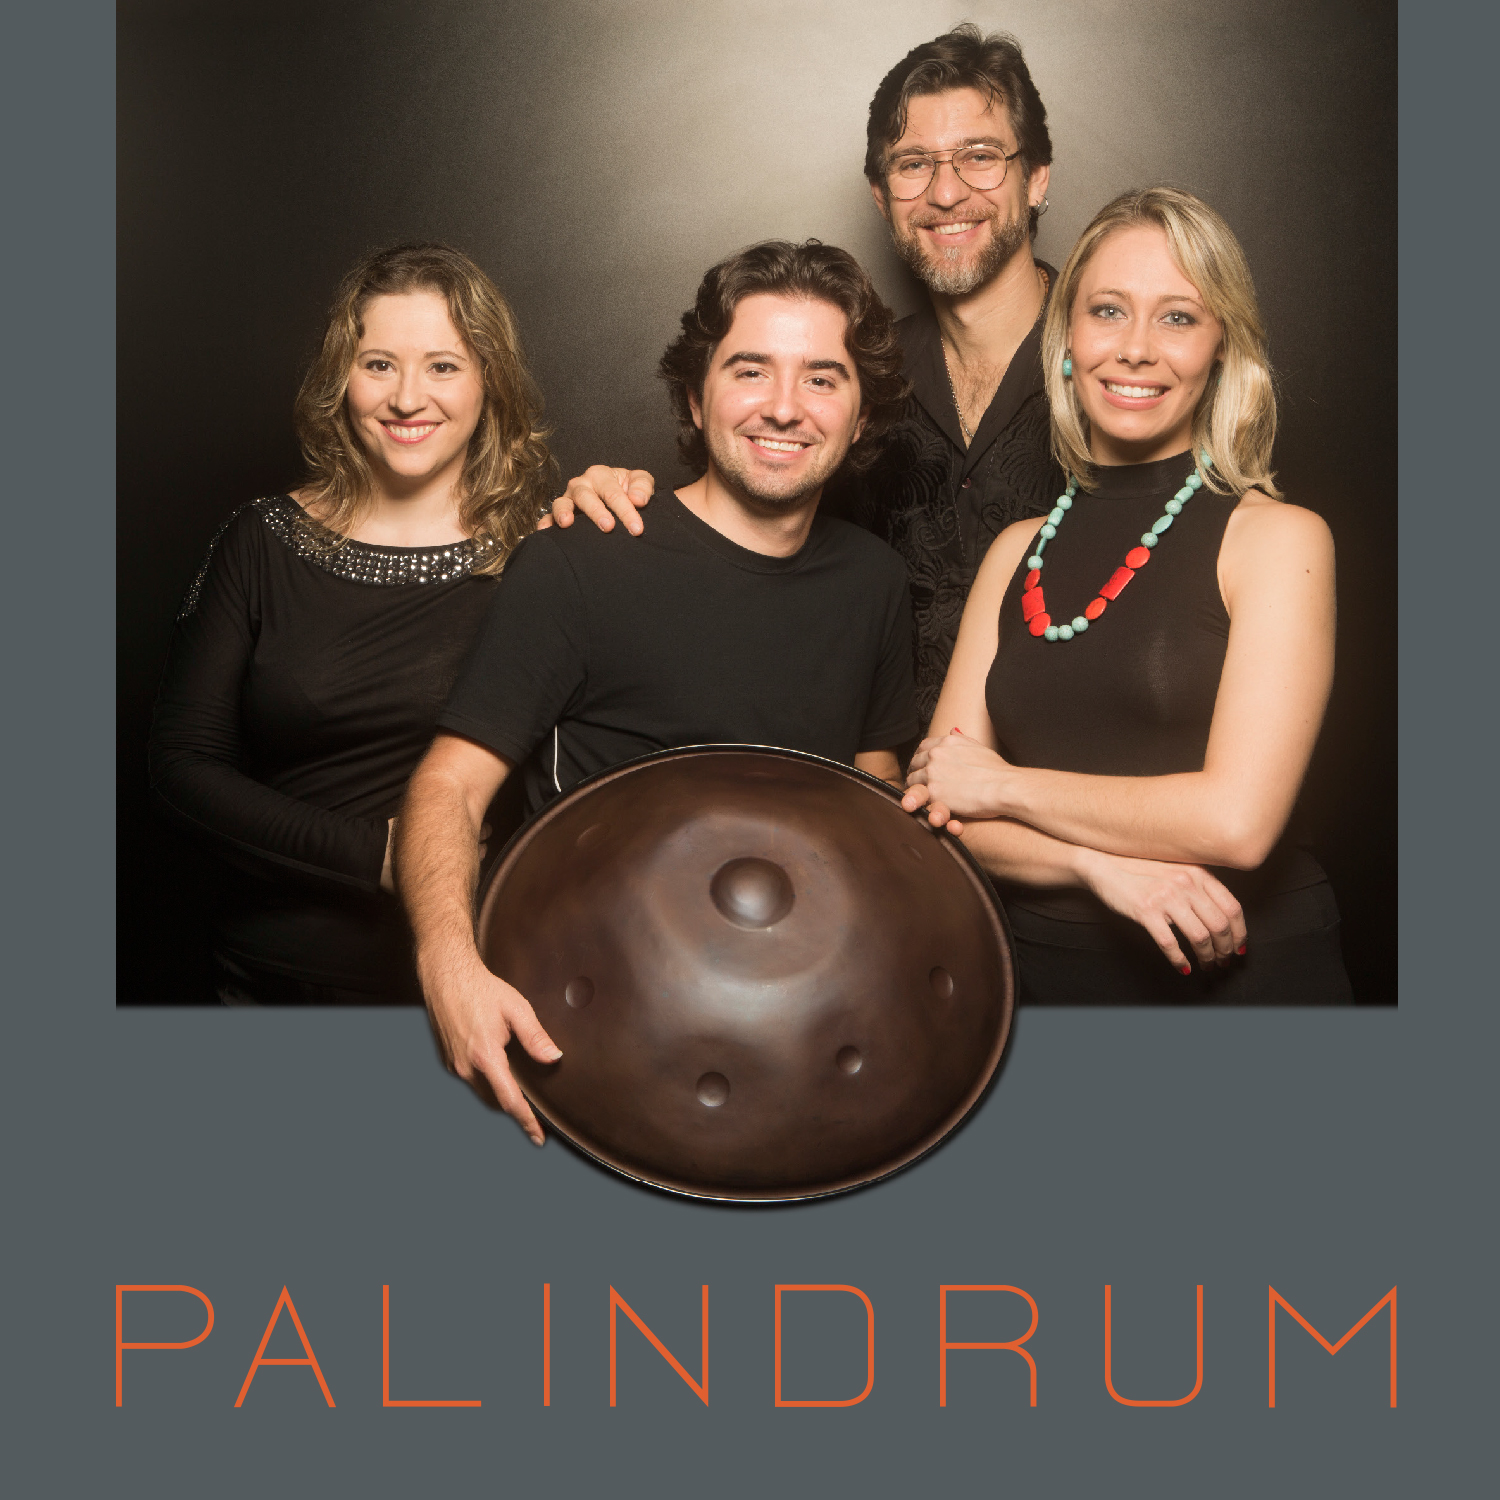 PALINDRUM - CAPA DO CD